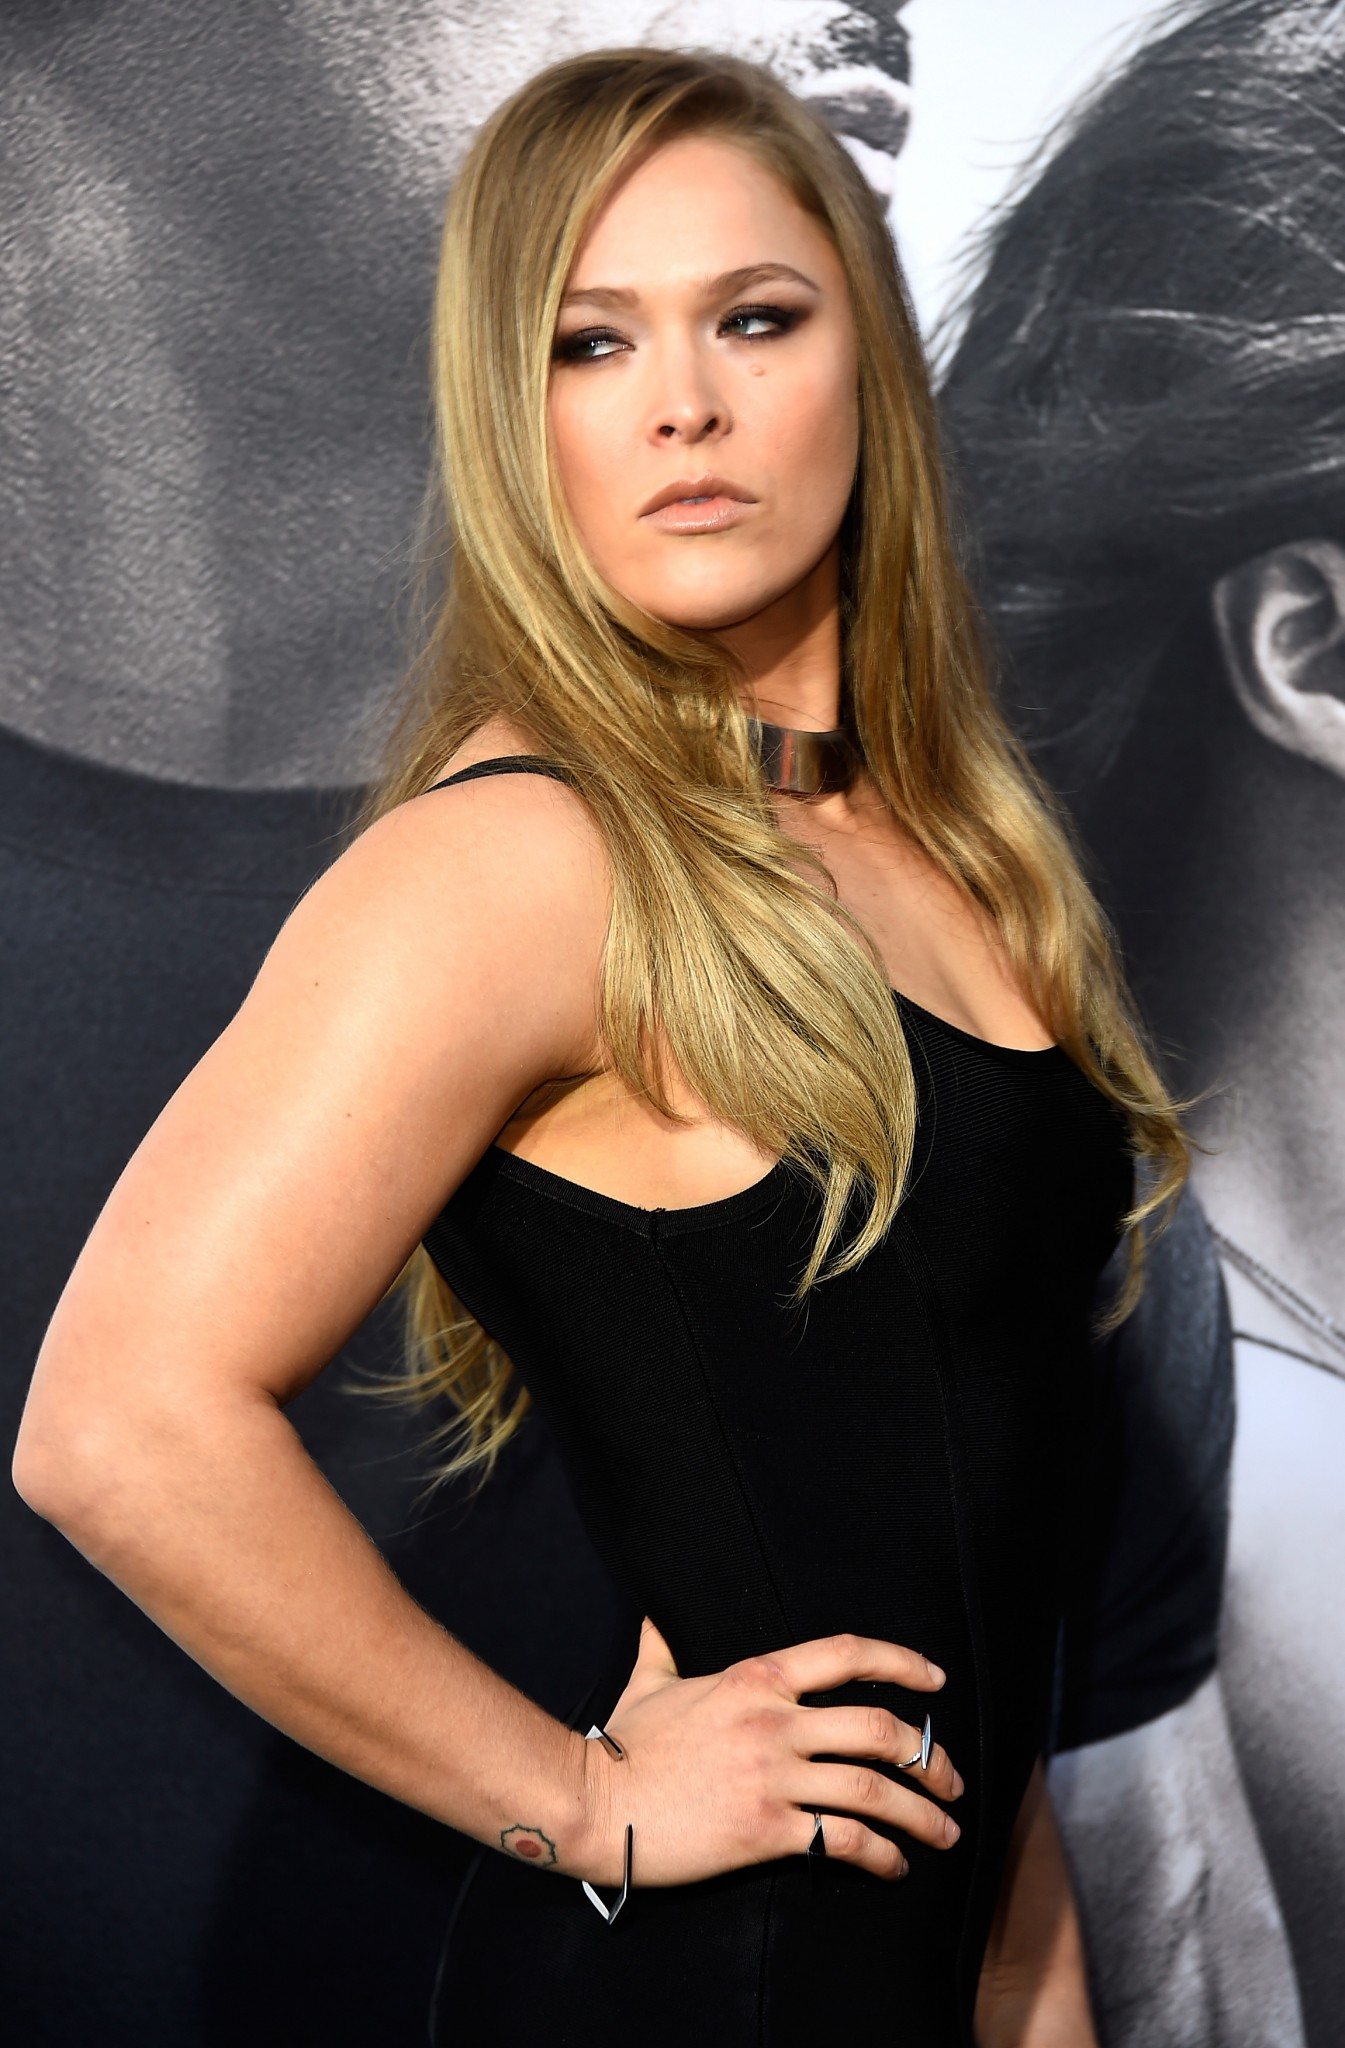 Ronda Rousey at the Fast & Furious 7 premiere